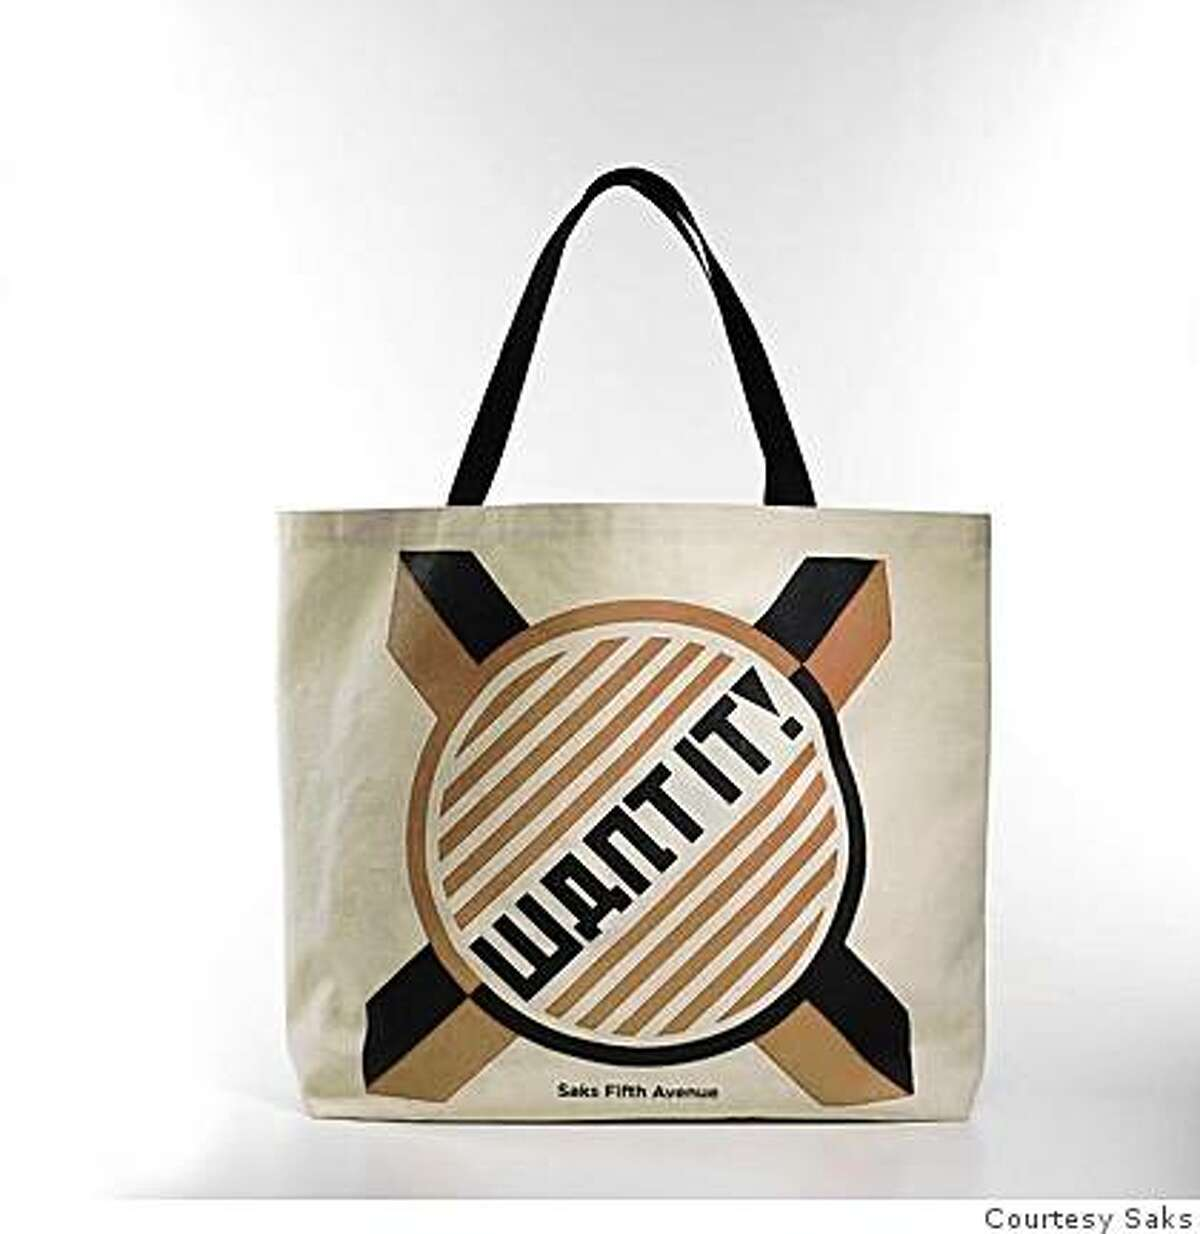 This Shepard Fairey designed tote bags will be sold for $20, $15 of which will go to HOPE, an energy-conscious non-profit focused on generating artist participation in campaigns, programs and events to promote education and peace around the world